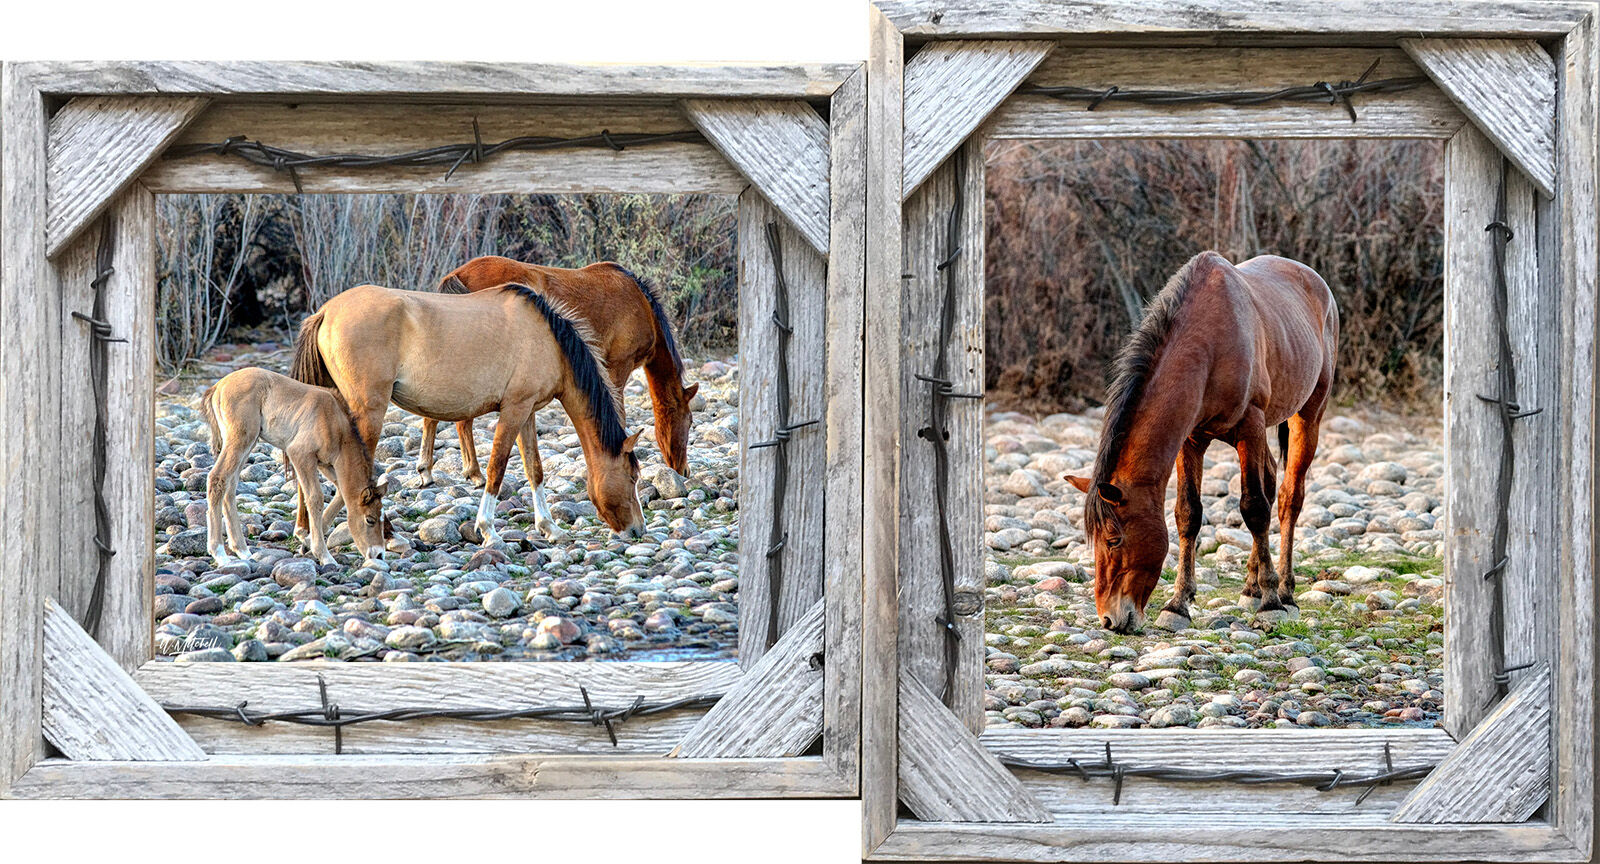 collectors choice, 8x10, photographs, framed, barnwood, frame, barbwire, paper prints, , photo